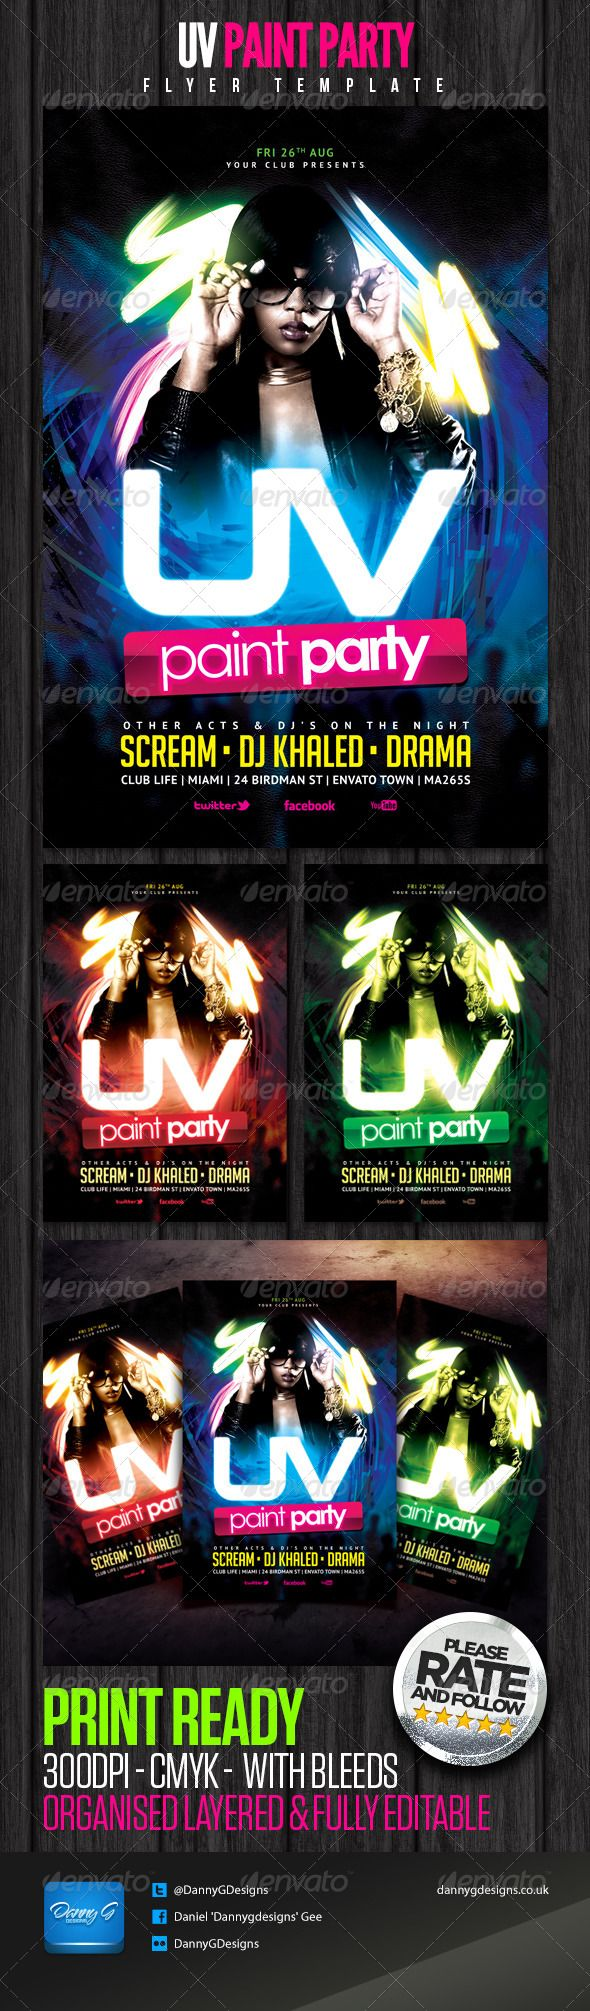 UV Paint Party Flyer Template | Paint party, Party flyer and Flyer ...